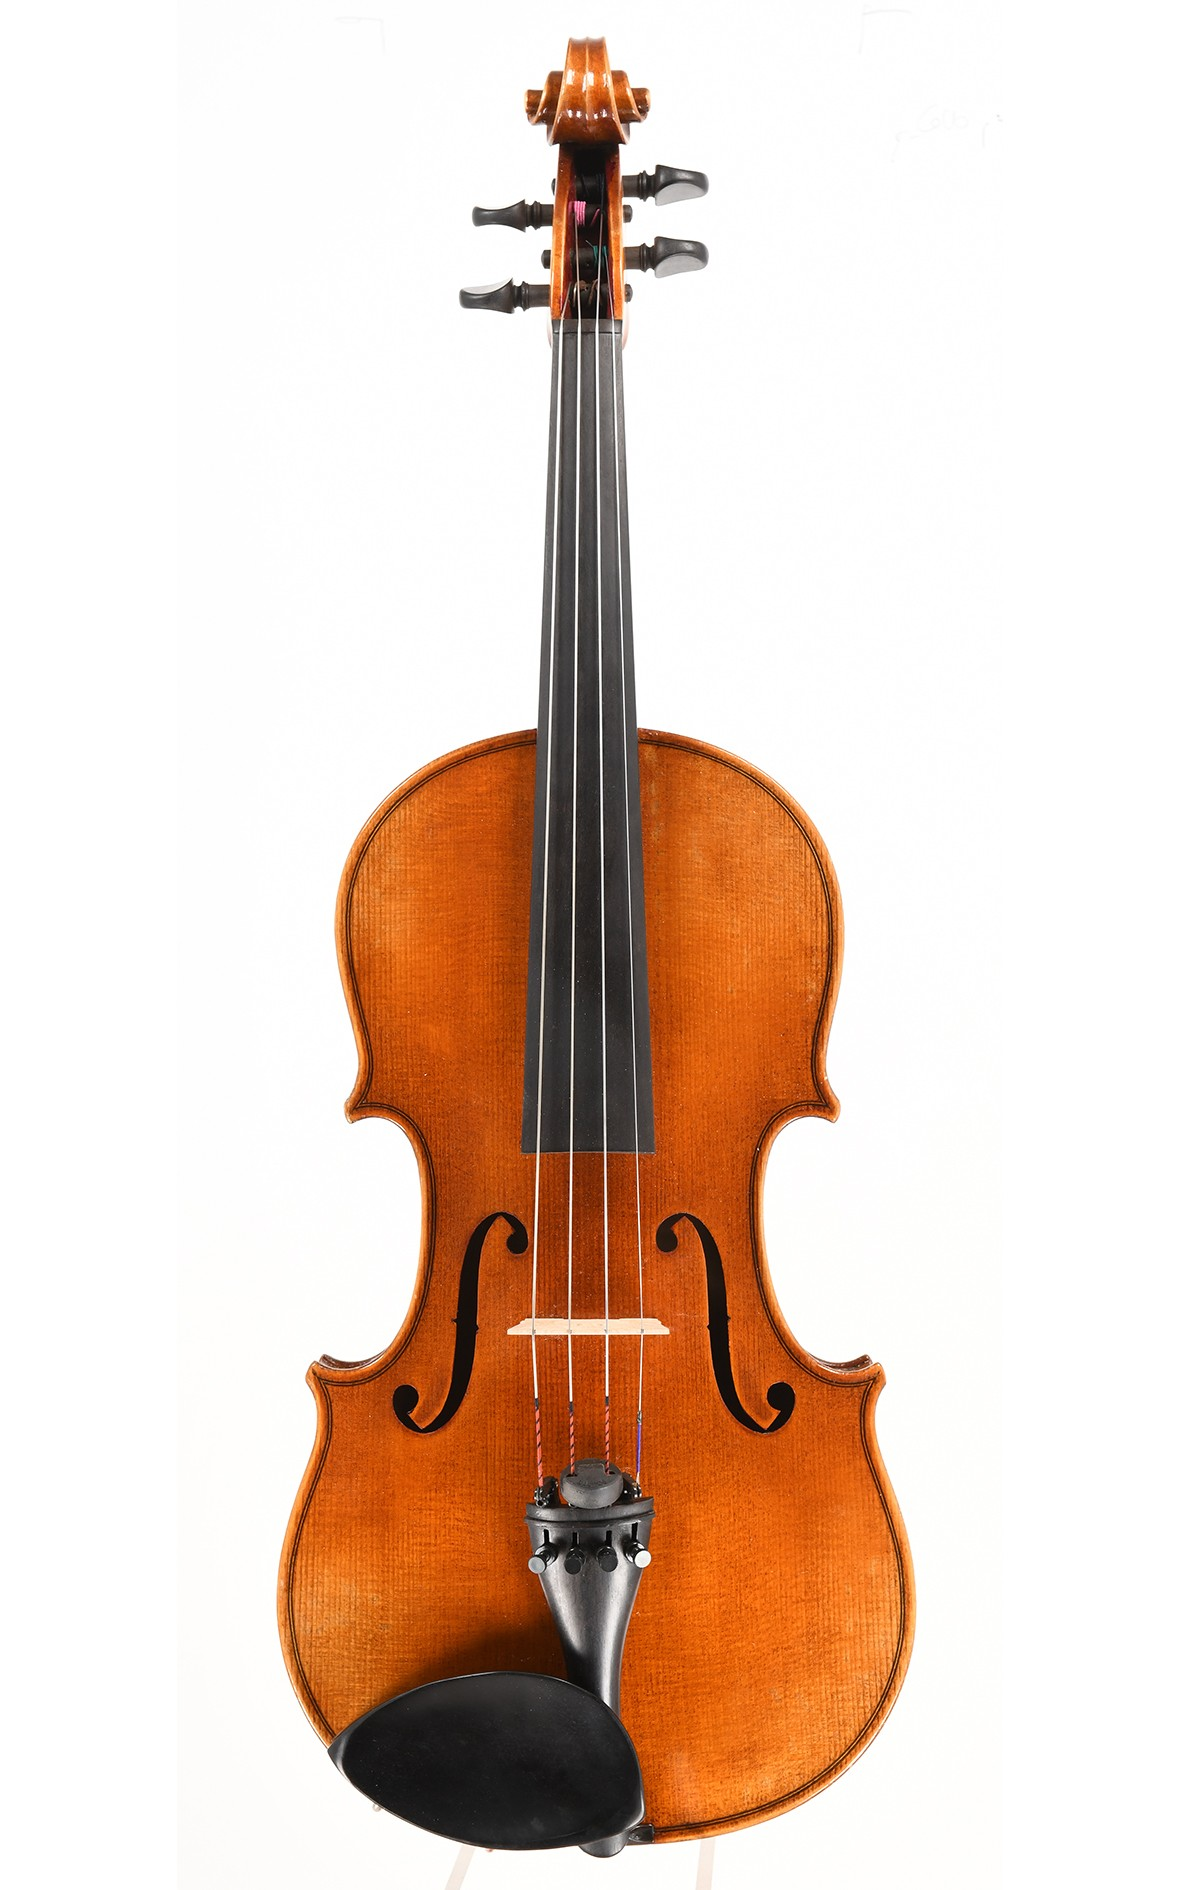 Markneukirchen violin, circa 1940, bright, clear tone